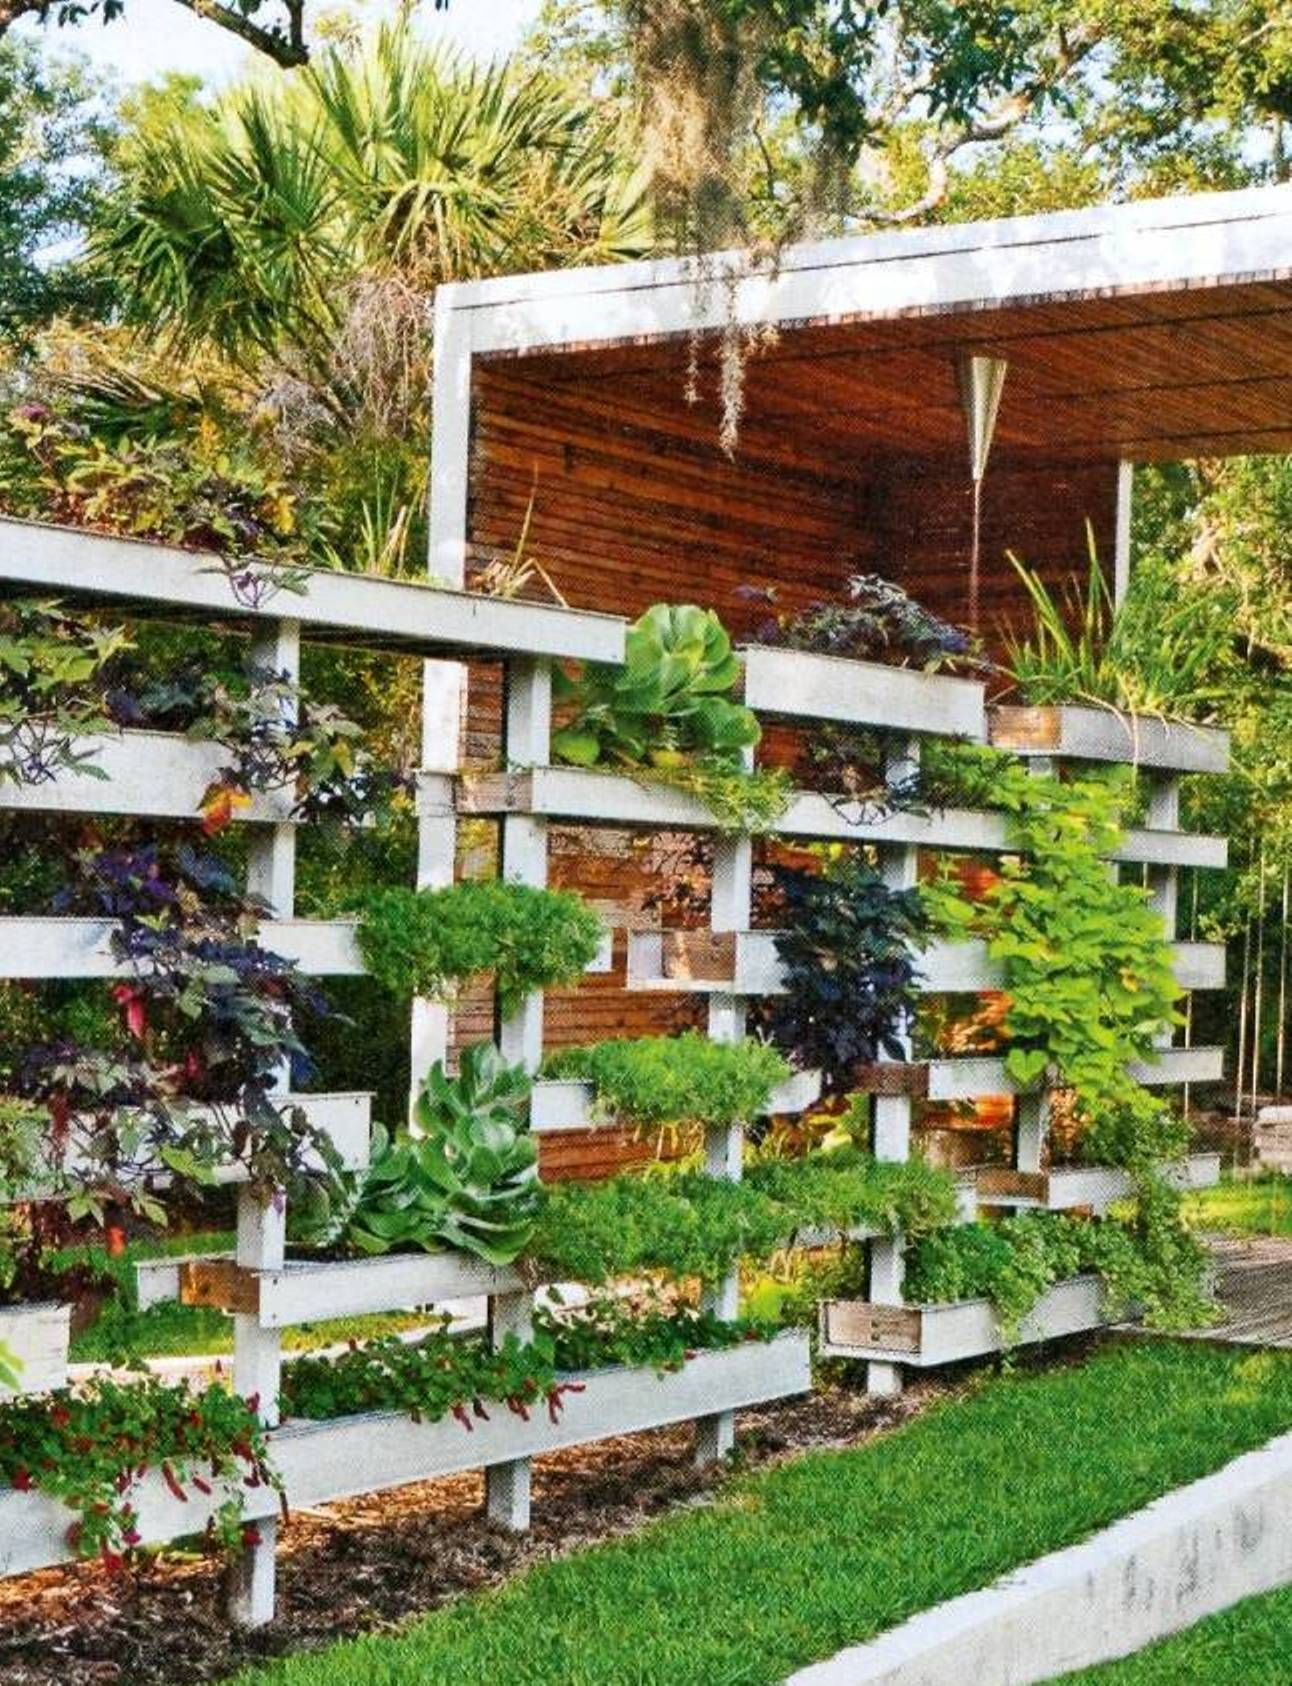 small space garden ideas wonder if you could set this up with a simple top